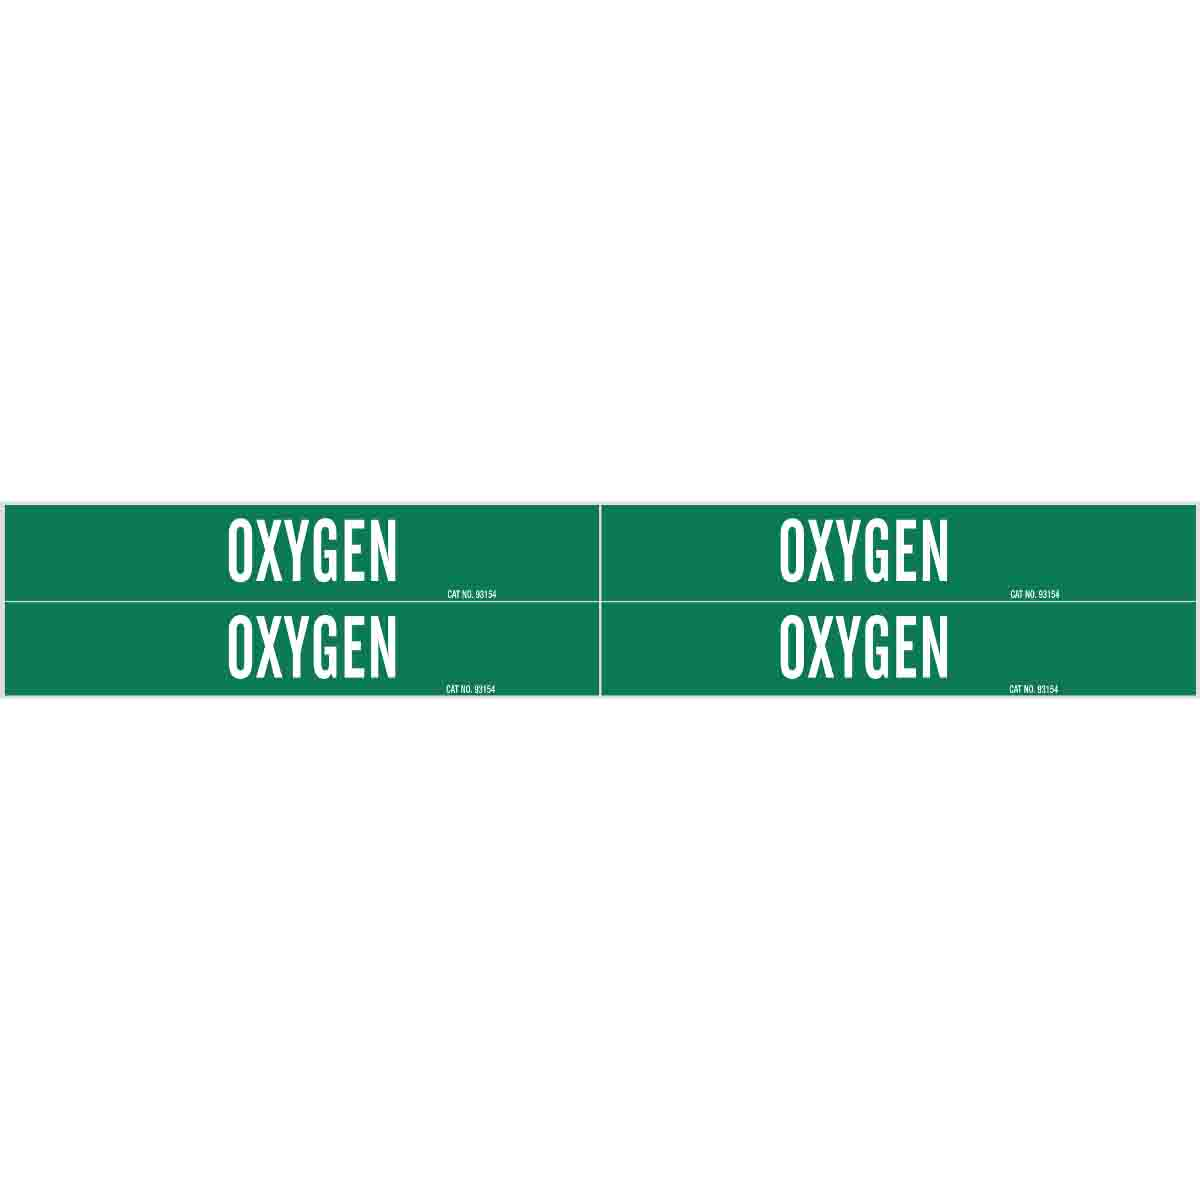 Brady® 7210-4 4 Style Pipe Marker, OXYGEN Legend, White on Green, Fits Pipe Dia: 1 to 2-1/2 in, 1-1/8 in H x 7 in W, B-946 Vinyl, Self-Adhesive Mount